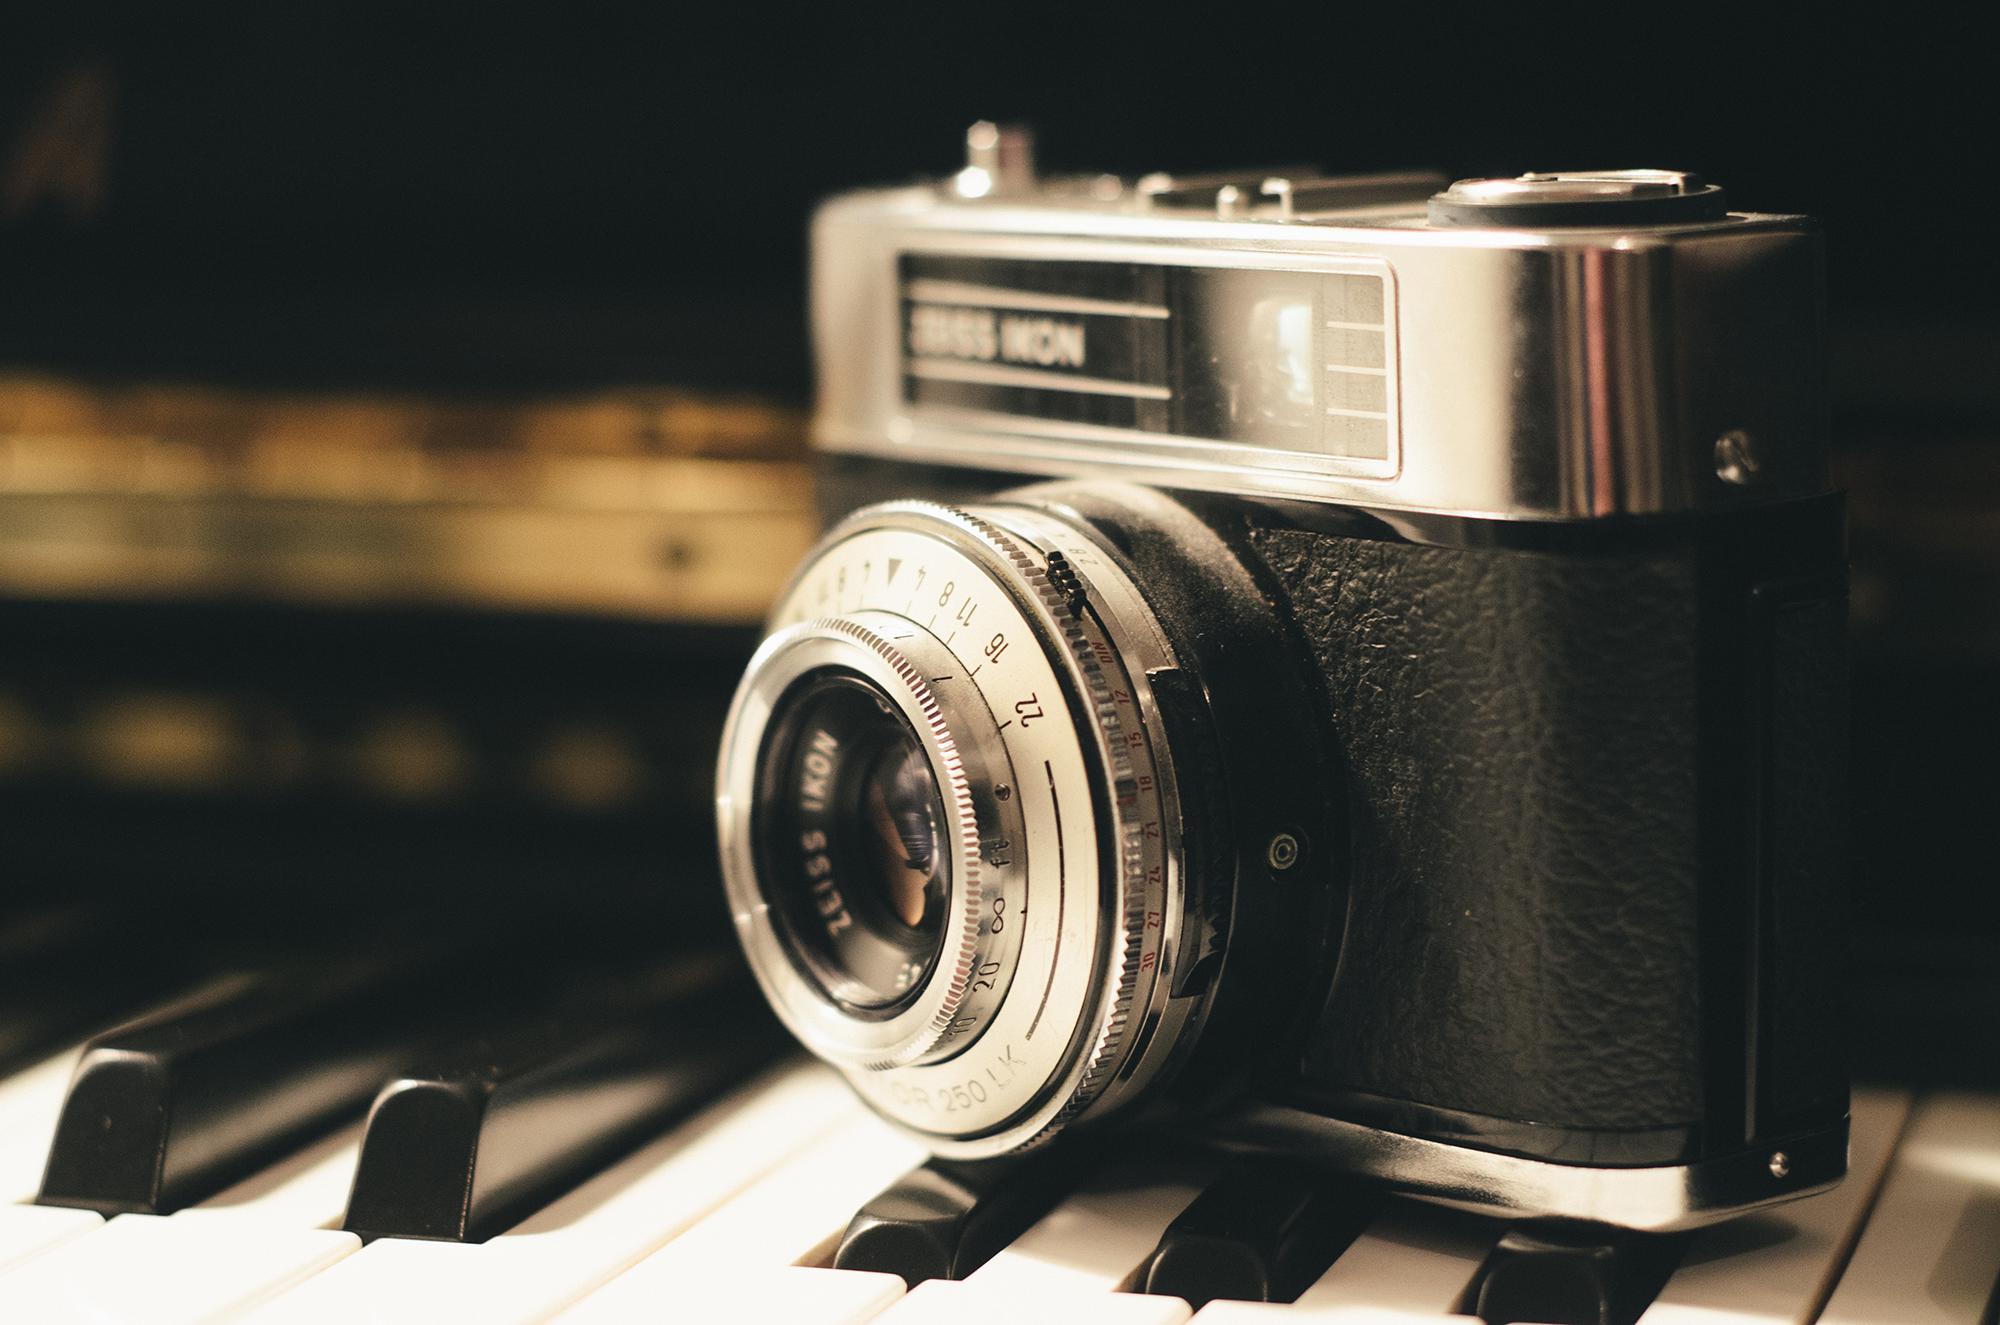 vintage film camera sits atop piano keys